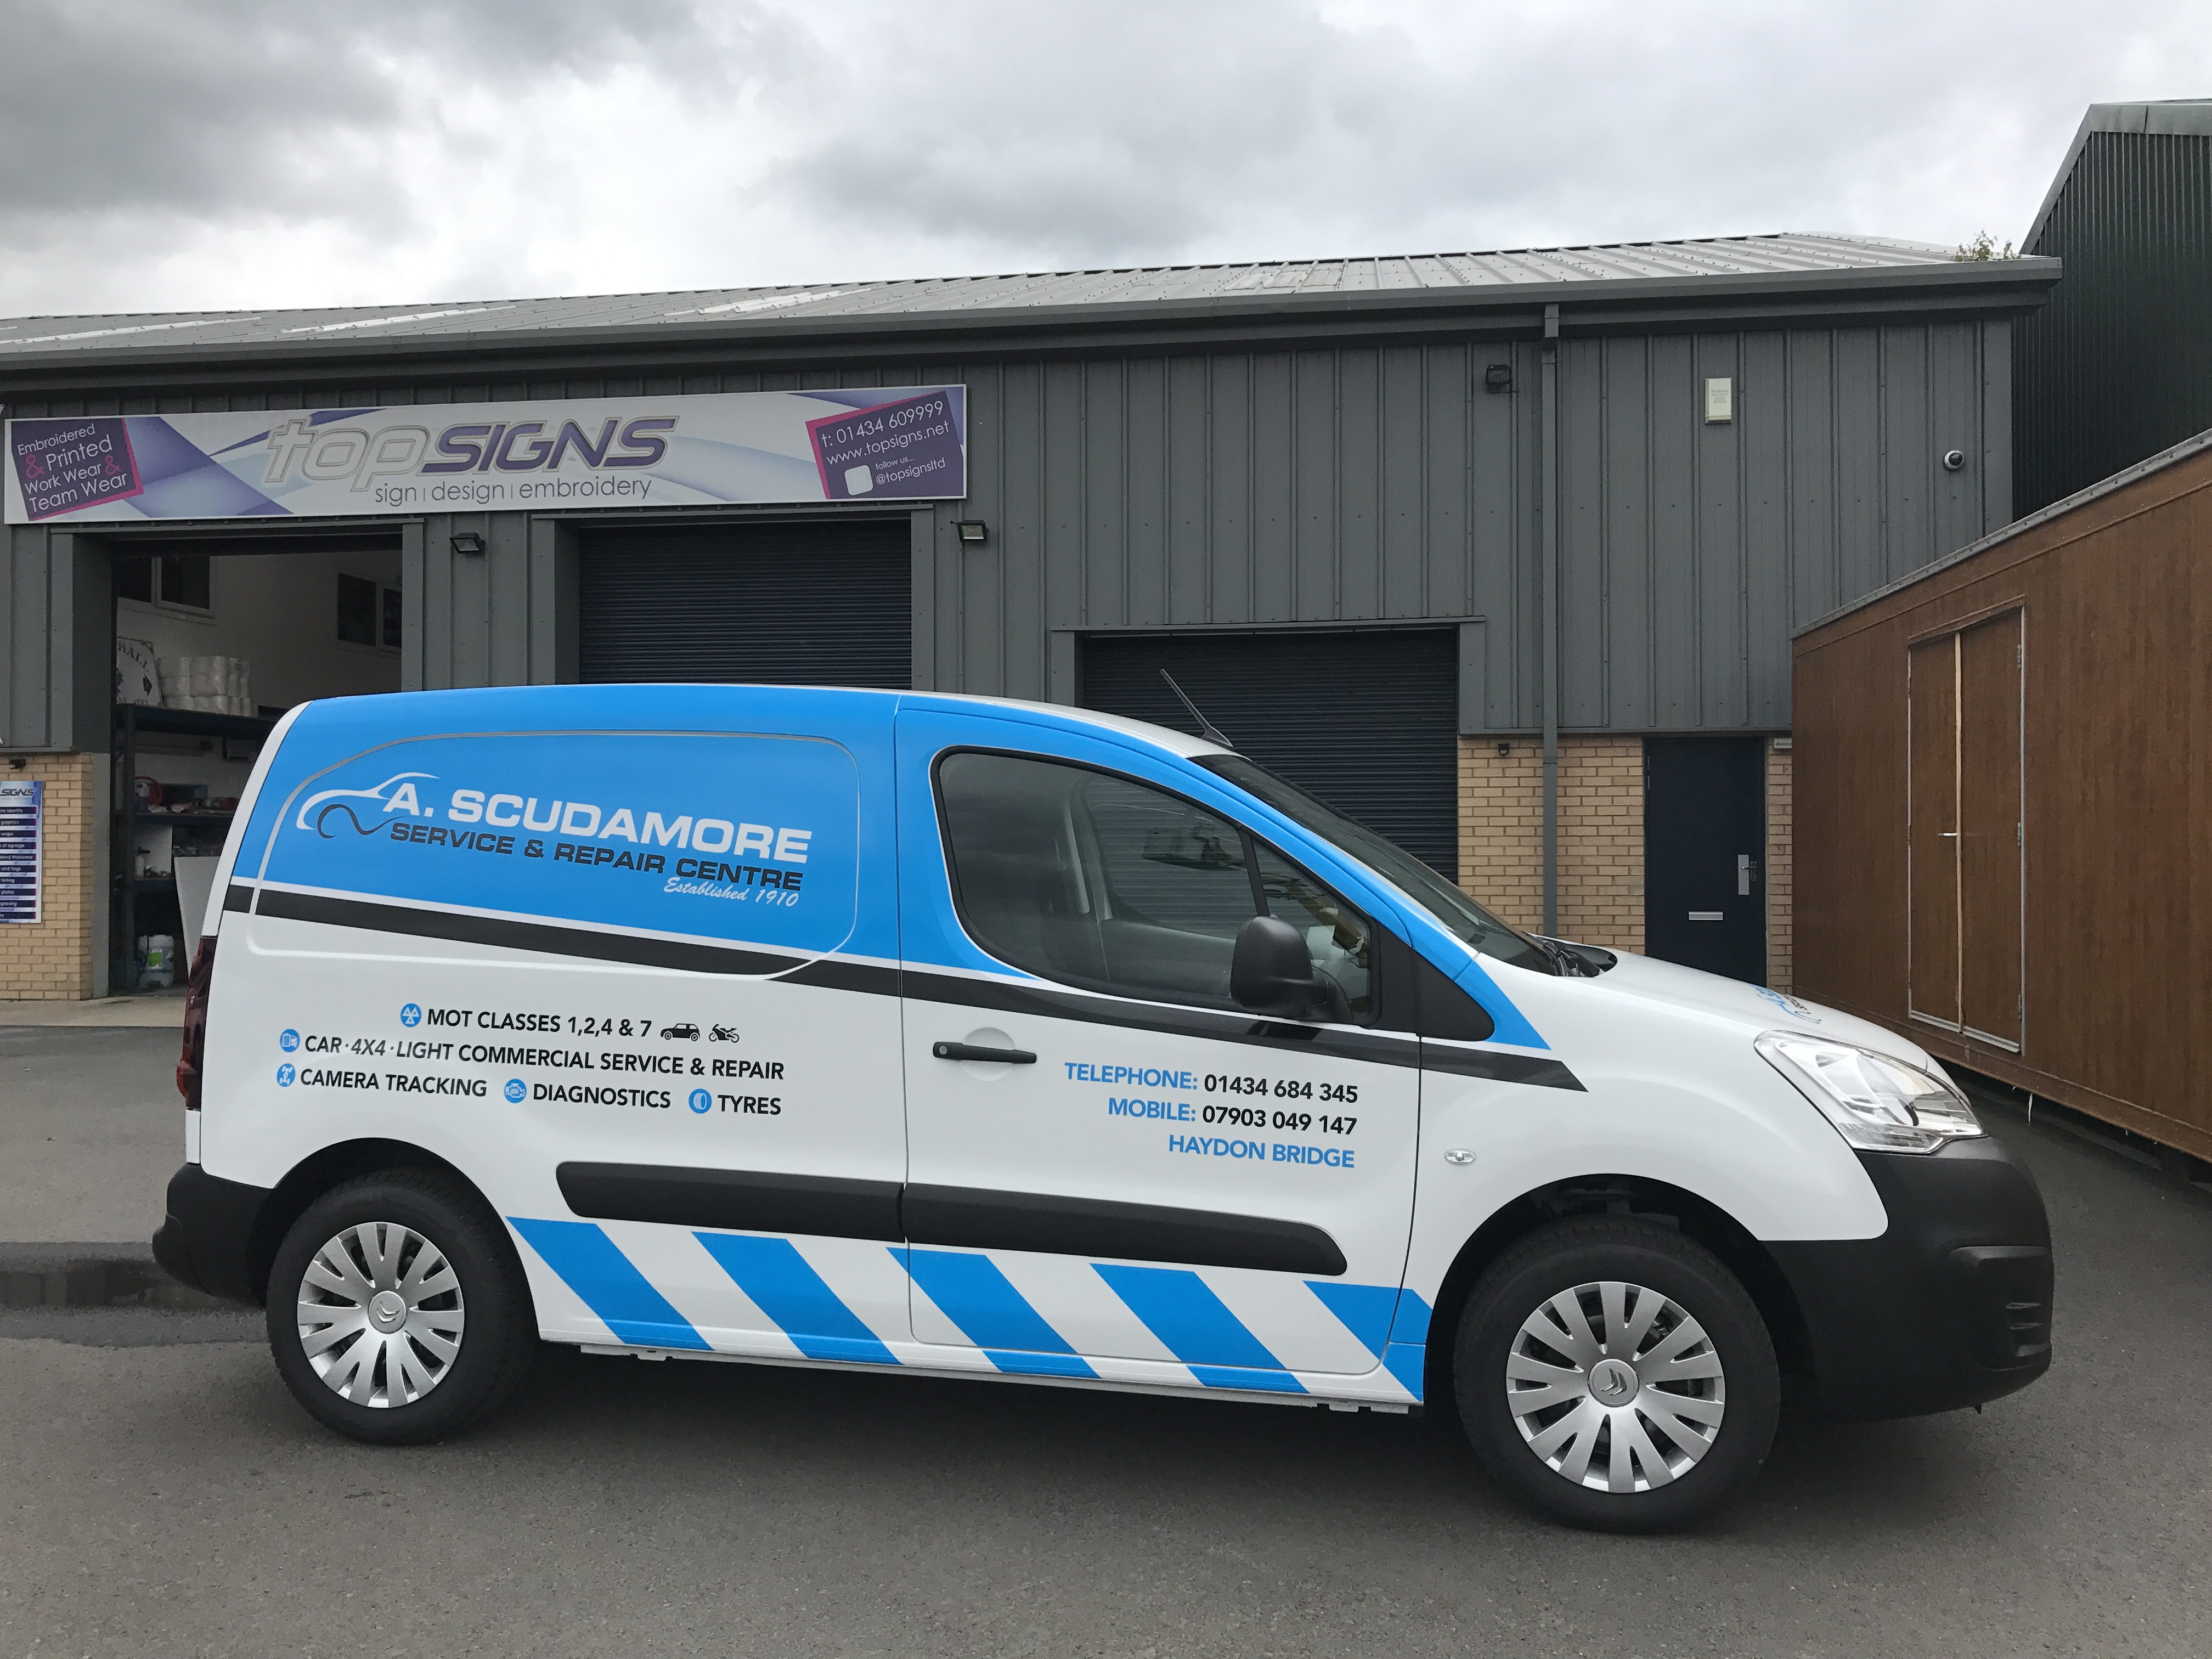 7e7fae662ba9c9 Top Signs Ltd - Professional Vehicle Graphics based in Hexham ...